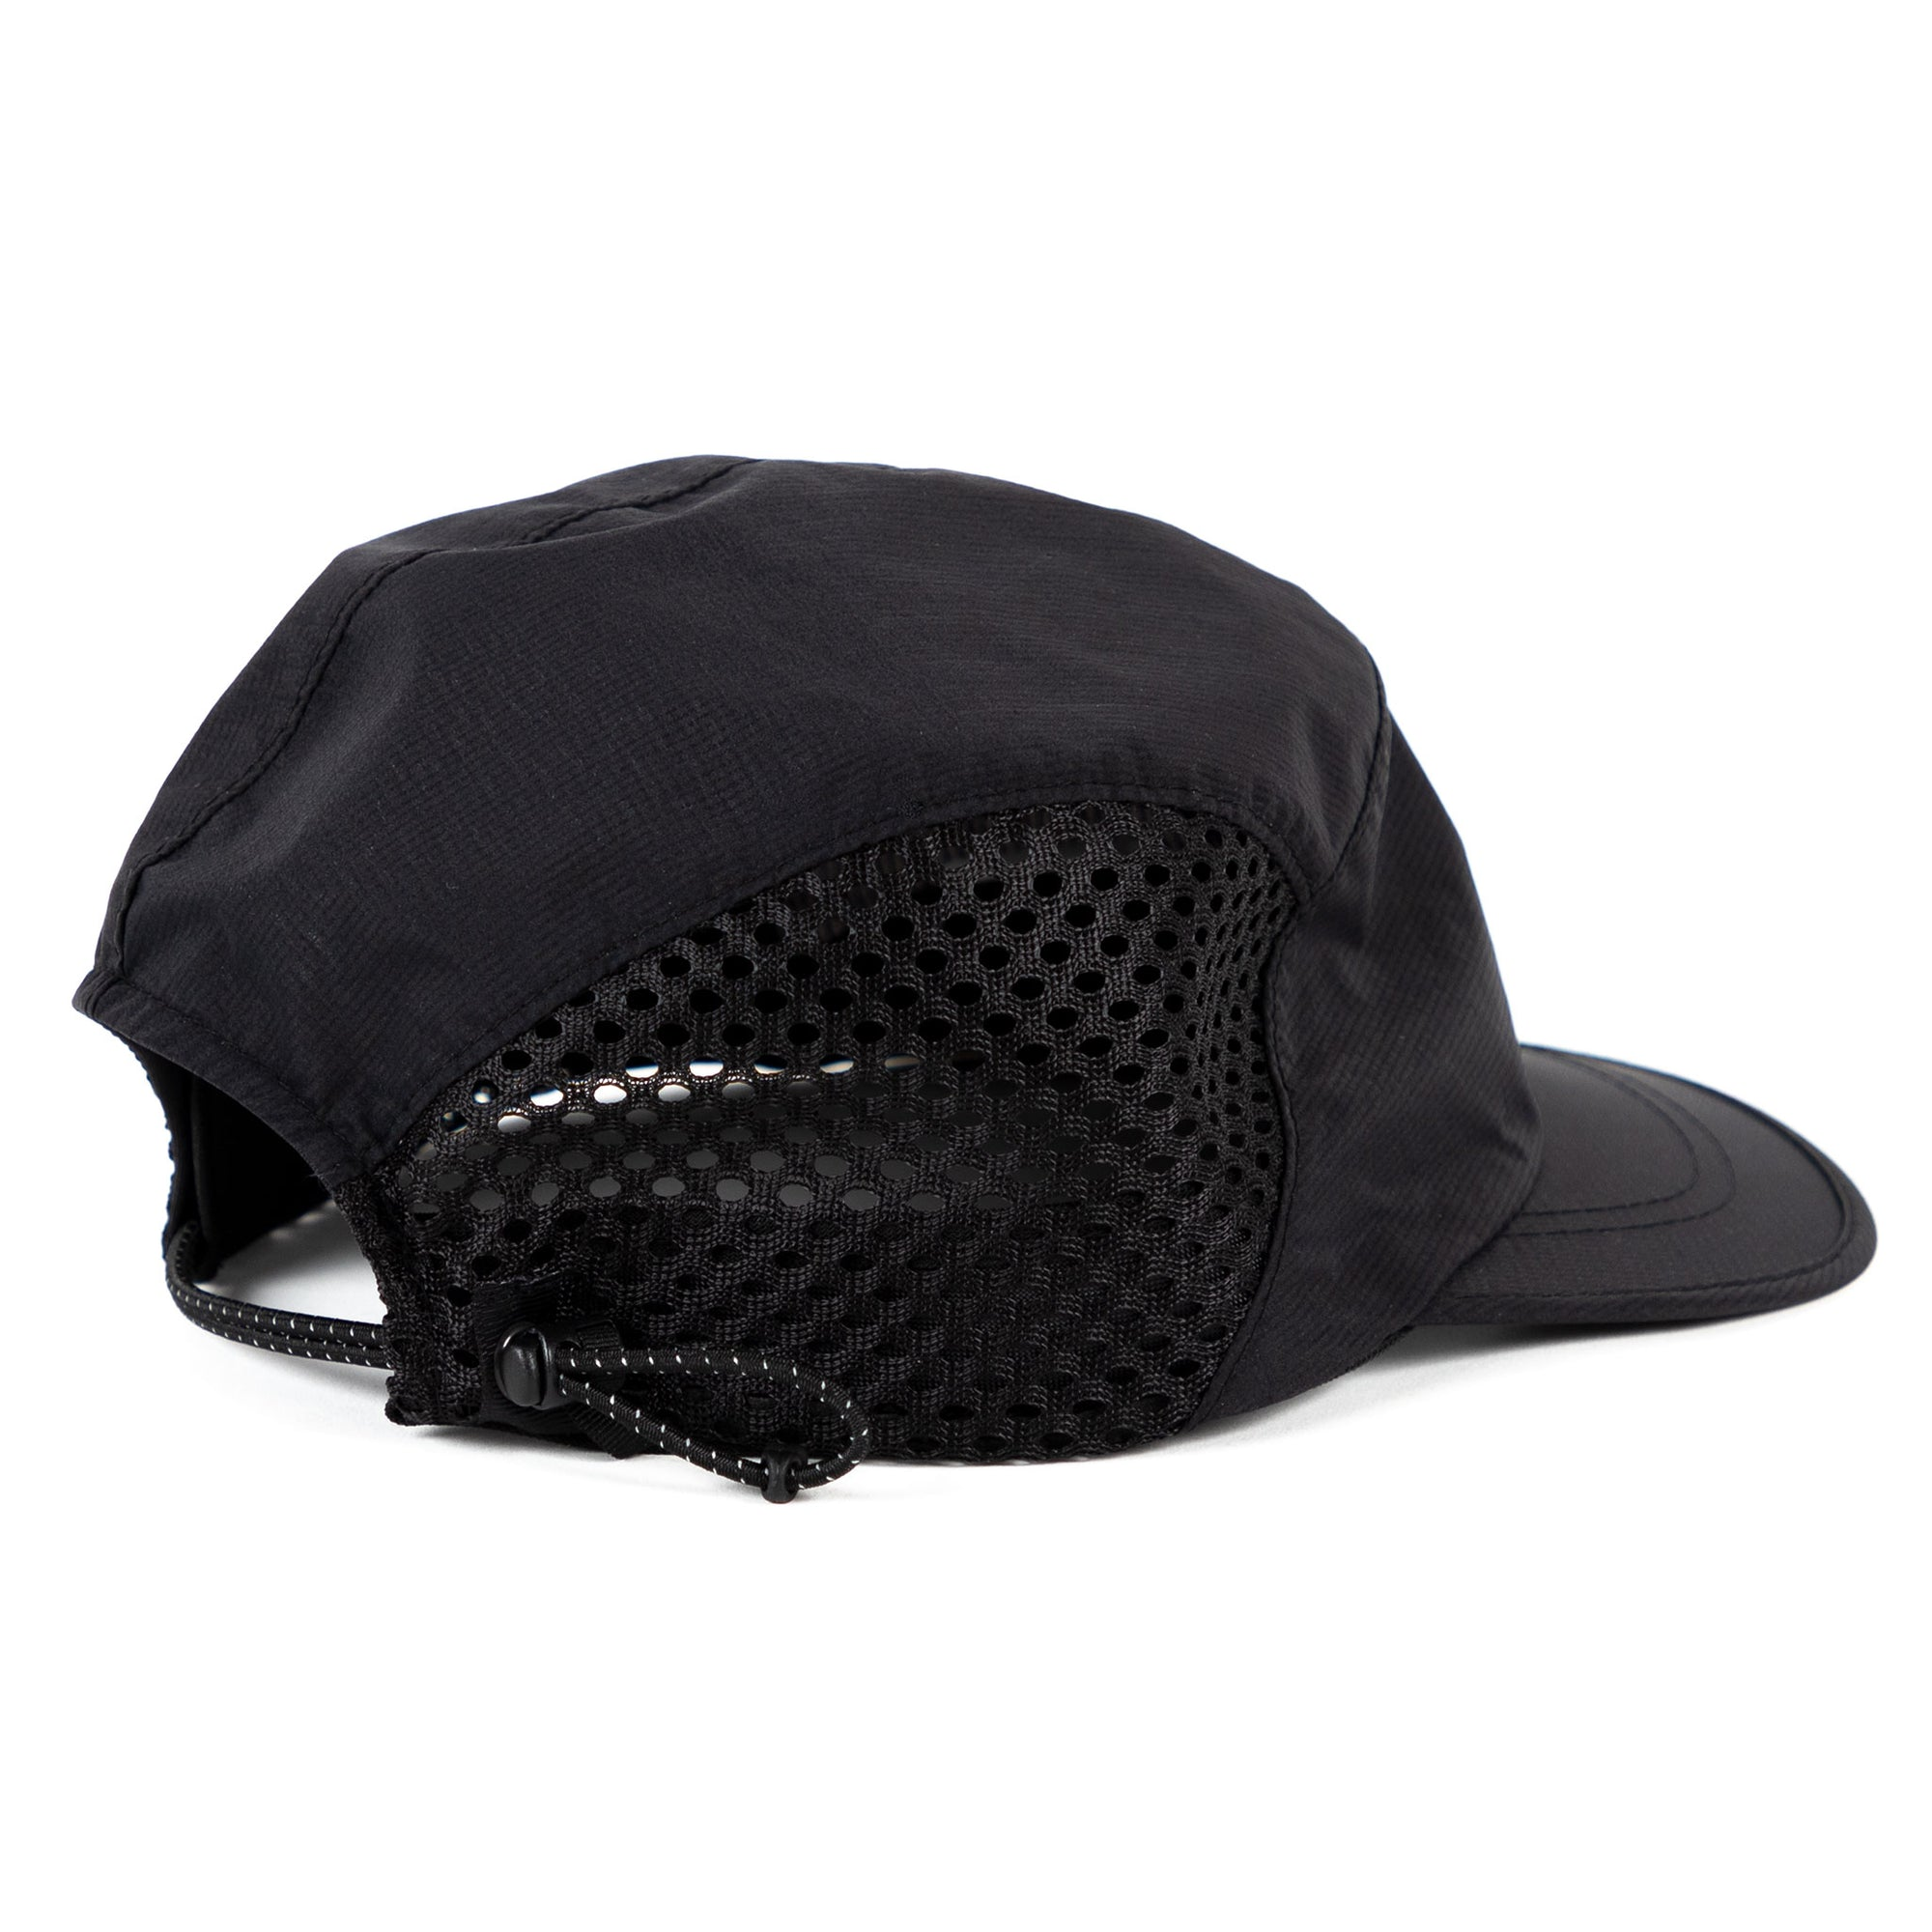 Goldwin short brim mesh cap black